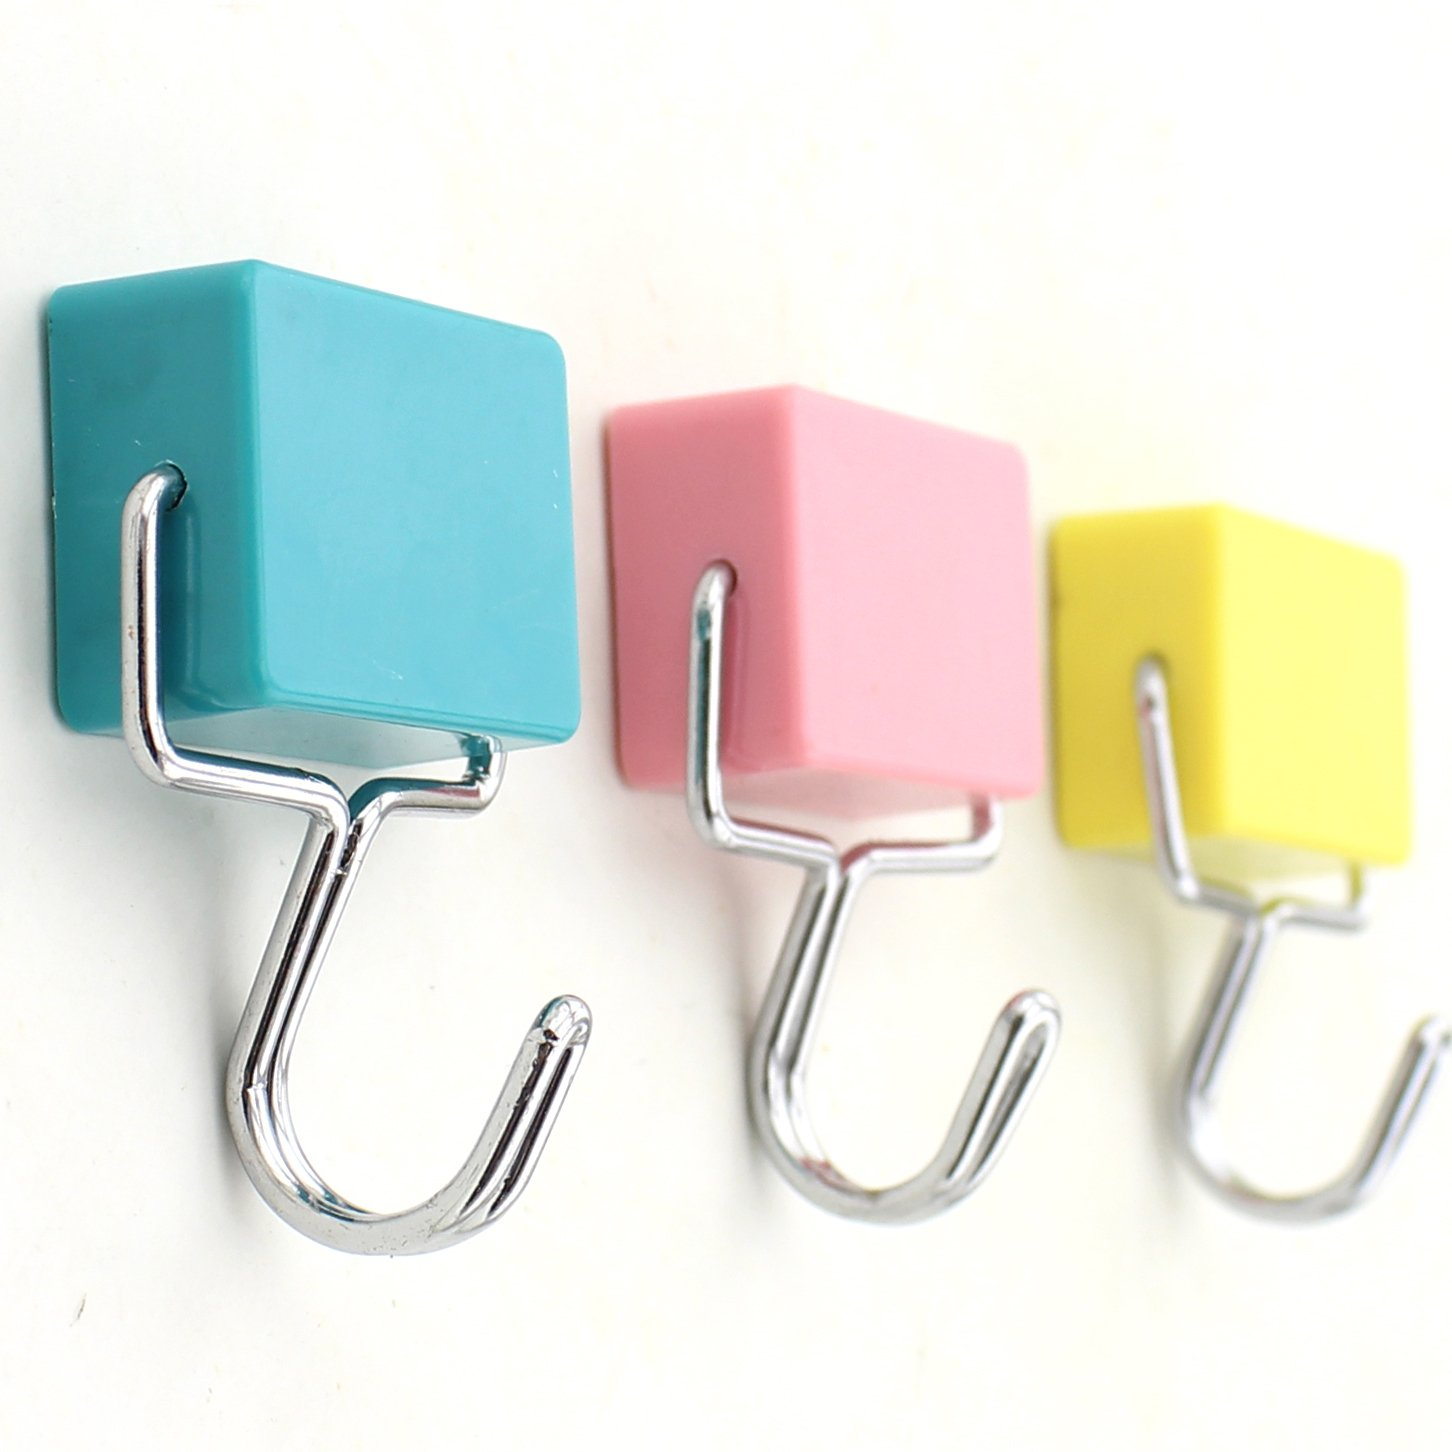 Zicome Super Strong Magnetic Hooks Set Of 3